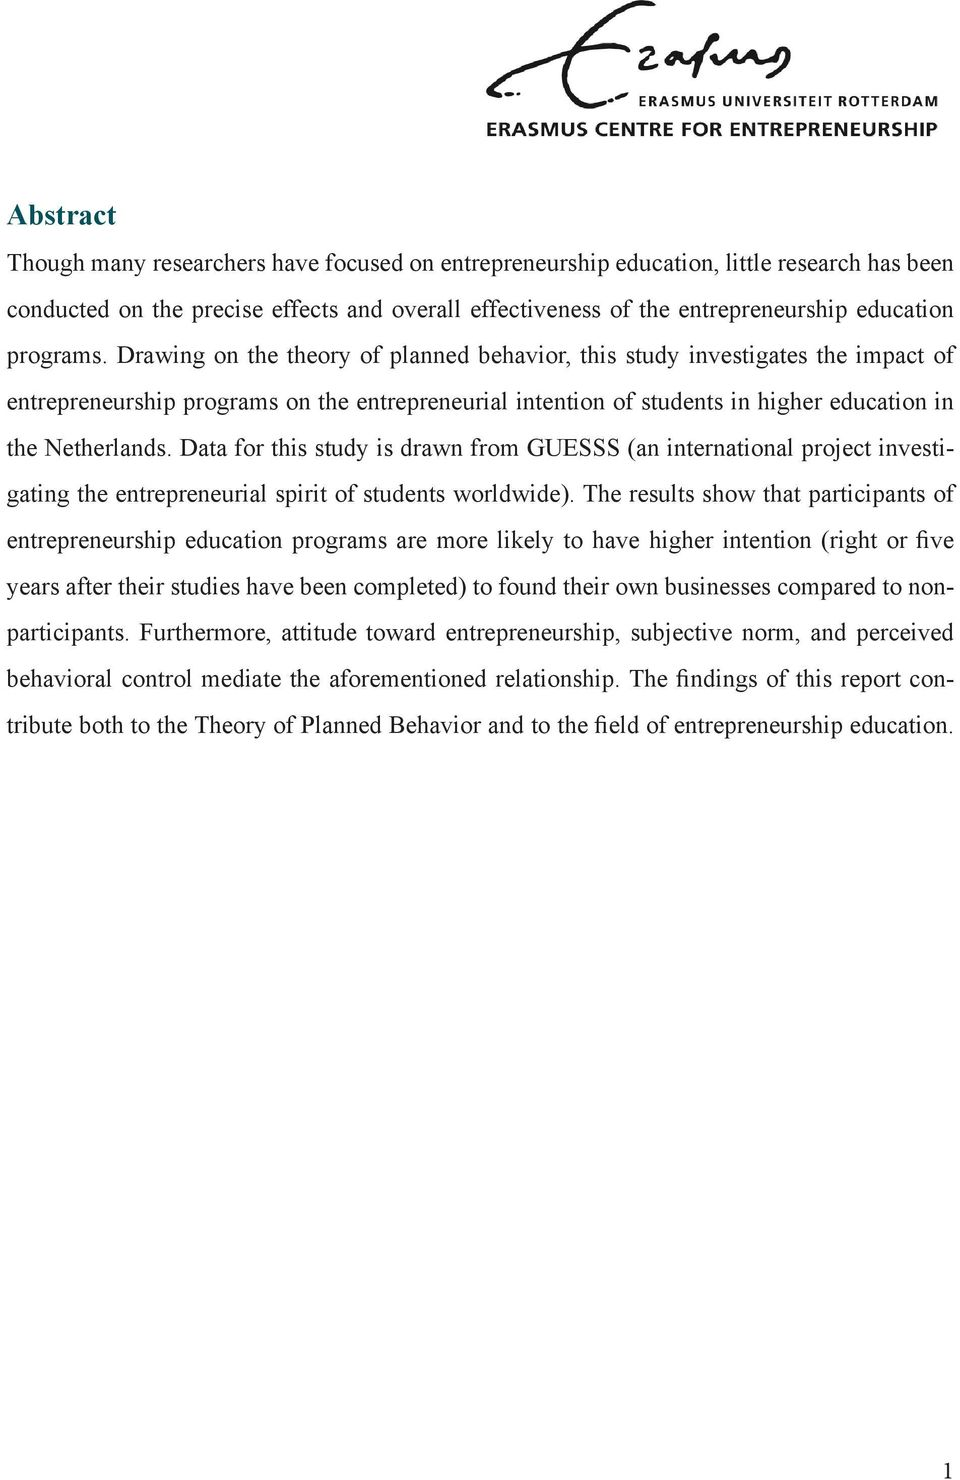 Drawing on the theory of planned behavior, this study investigates the impact of entrepreneurship programs on the entrepreneurial intention of students in higher education in the Netherlands.